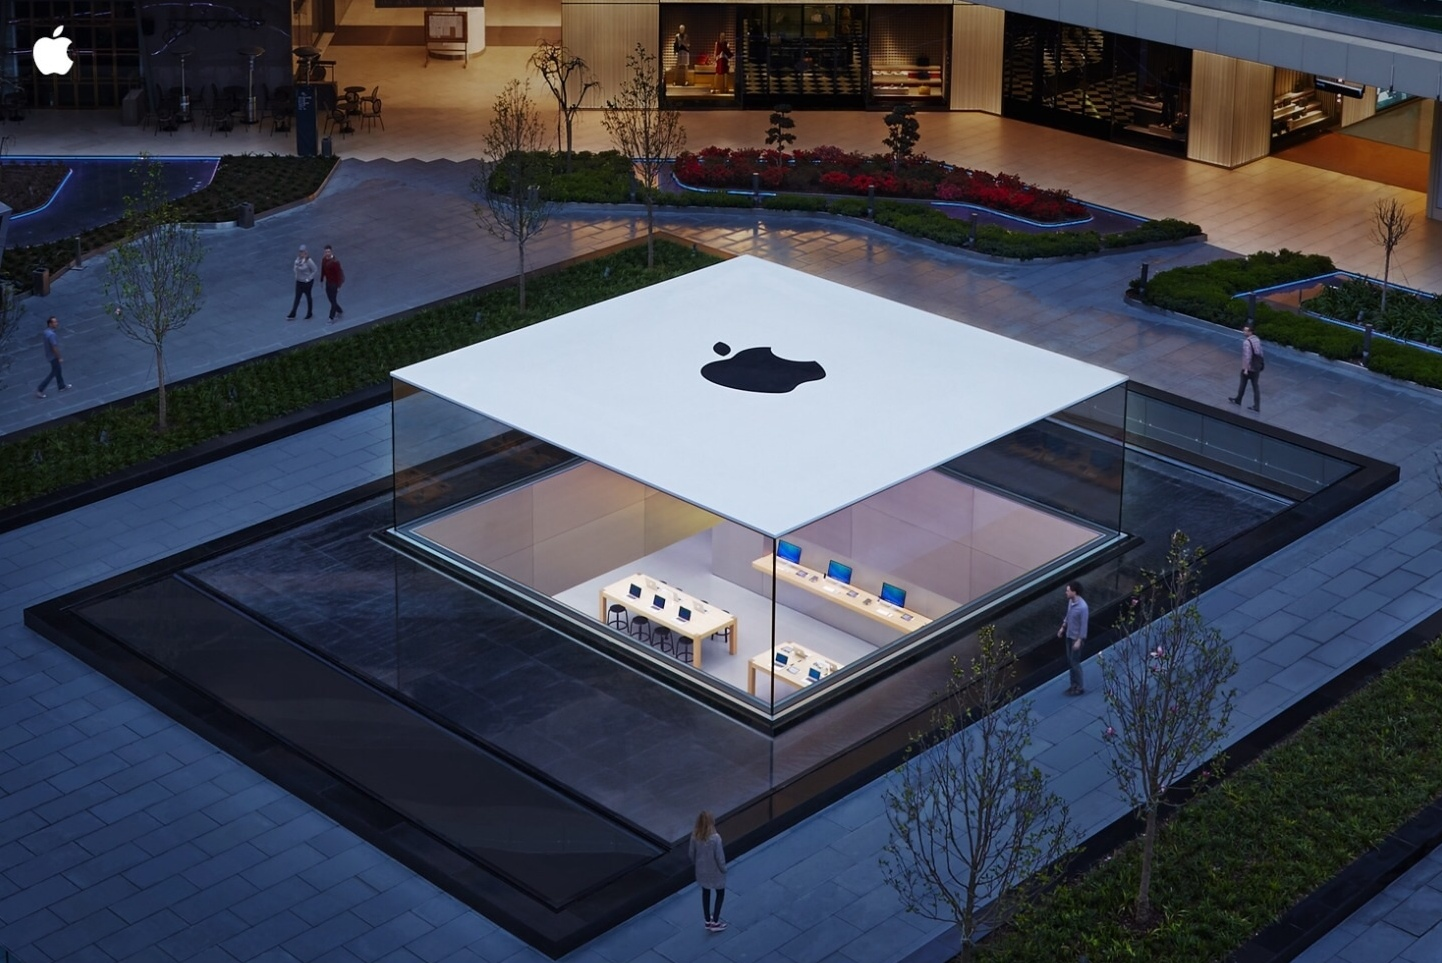 A birds-eye view of the rooftop of Apple's flagship store in Istanbul, Turkey